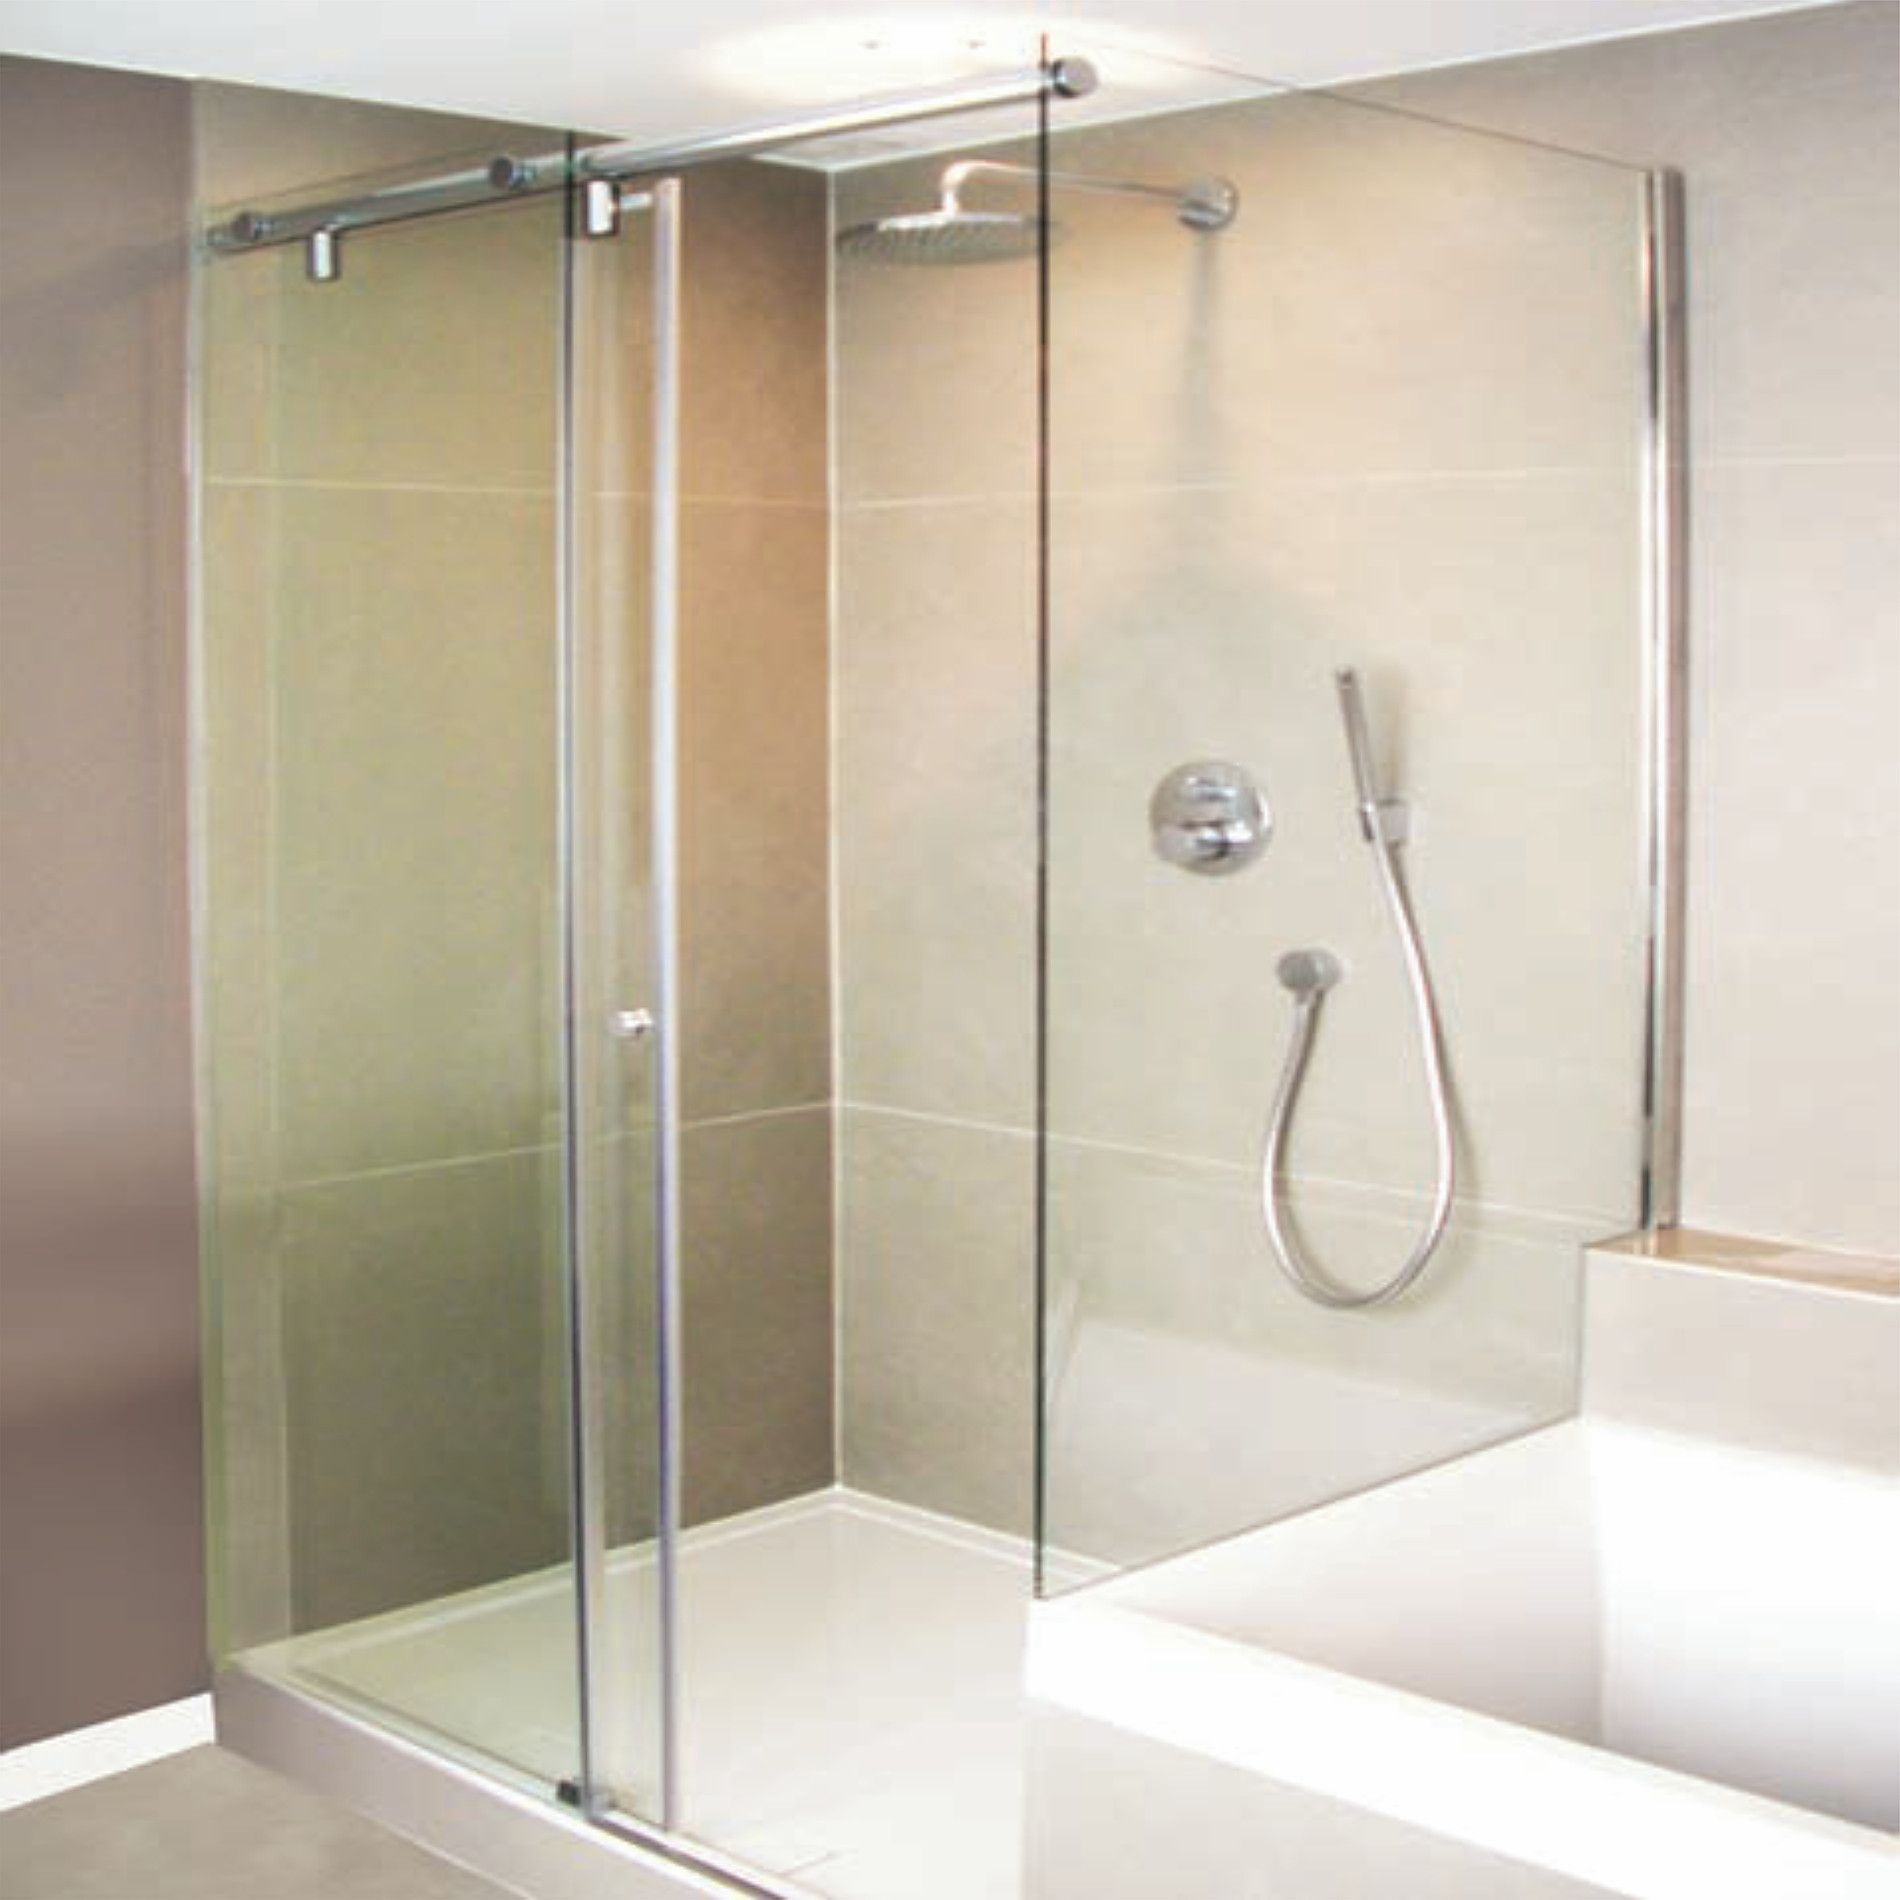 Image Gallery - Shower Enclosures & Wetrooms, Canopies, Balustrades ...